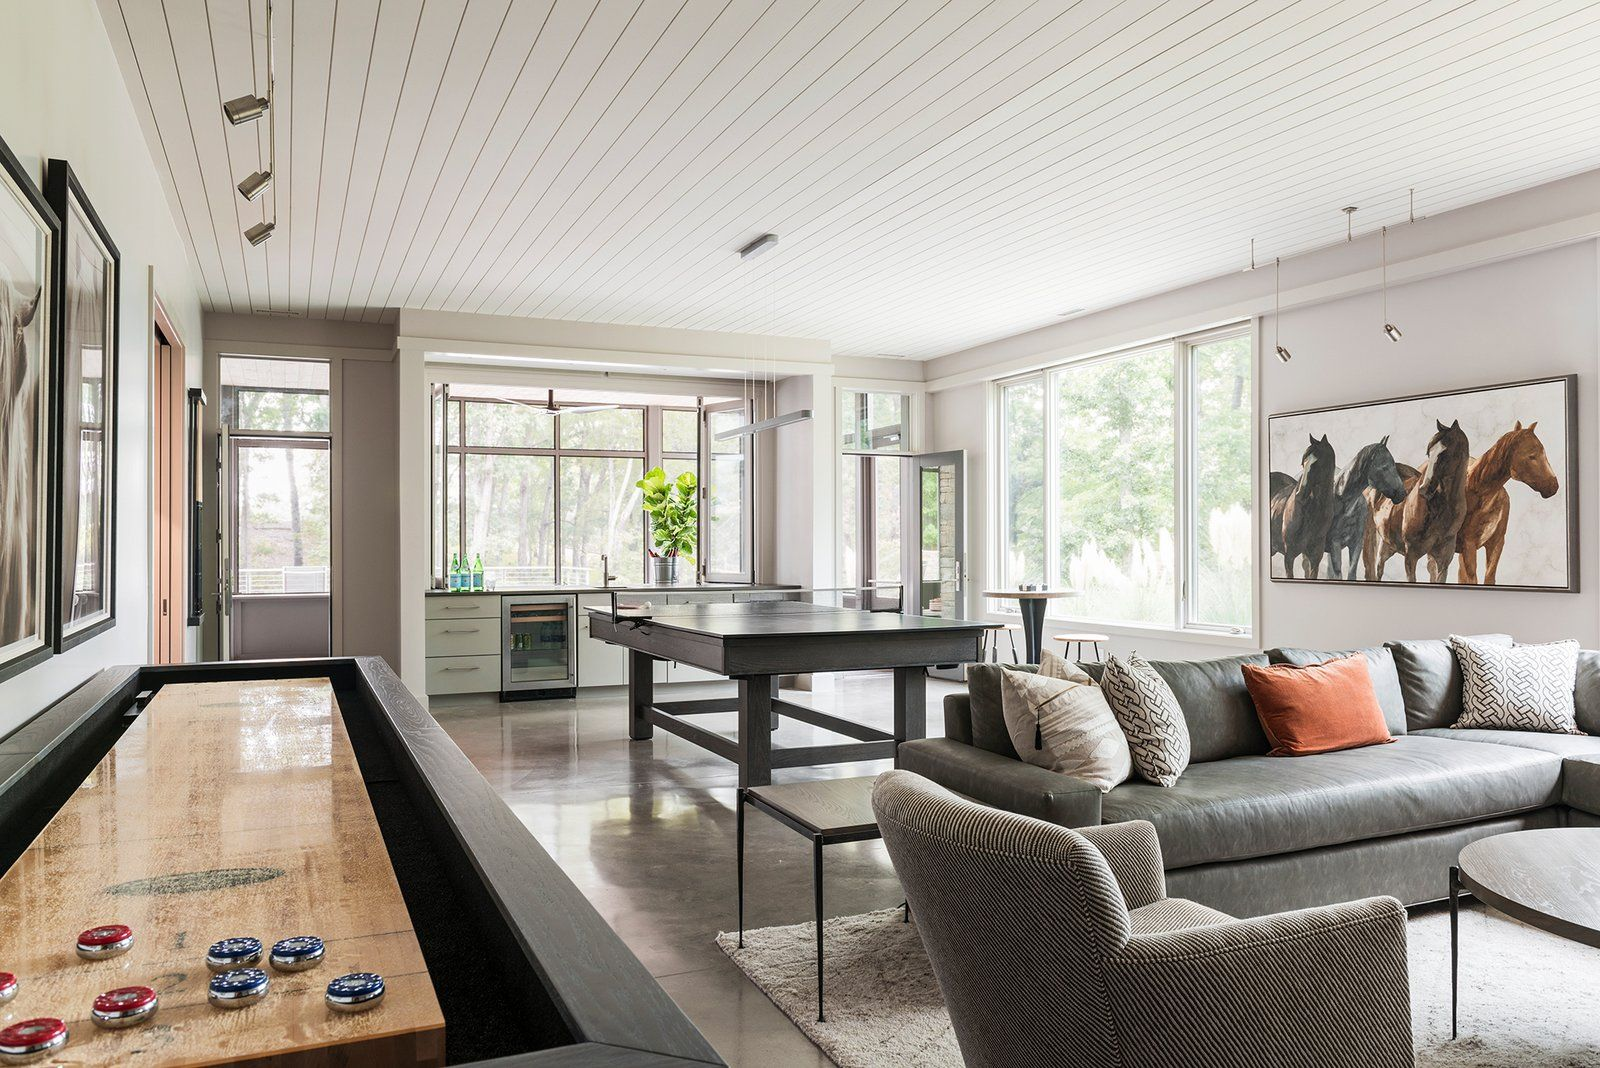 Mill Spring Modern Farmhouse Modern Home in Mill Spring, North… on Dwell